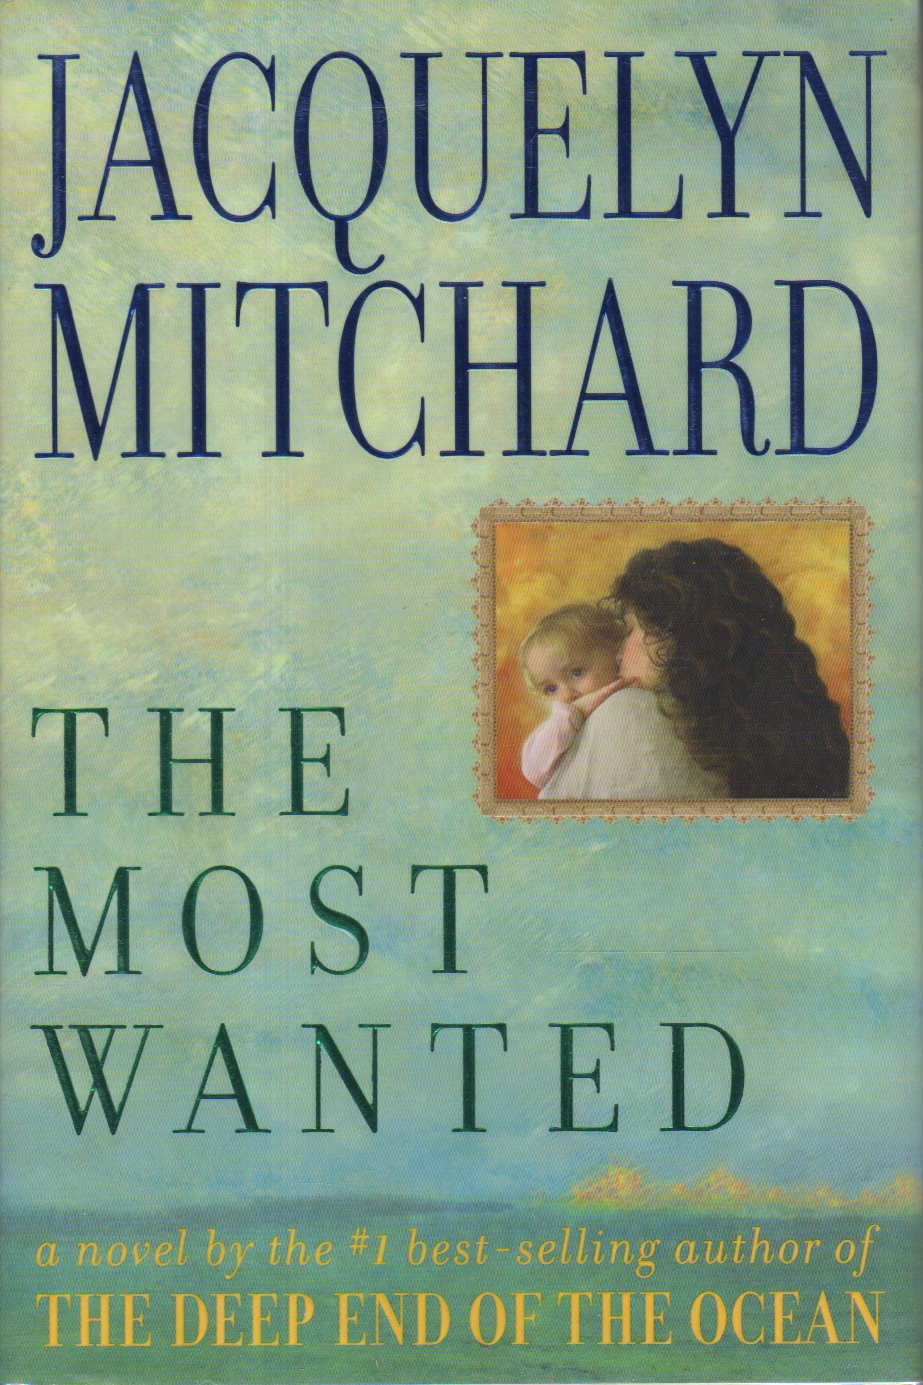 Book cover picture of Mitchard, Jacquelyn. THE MOST WANTED. New York: Viking, (1998)